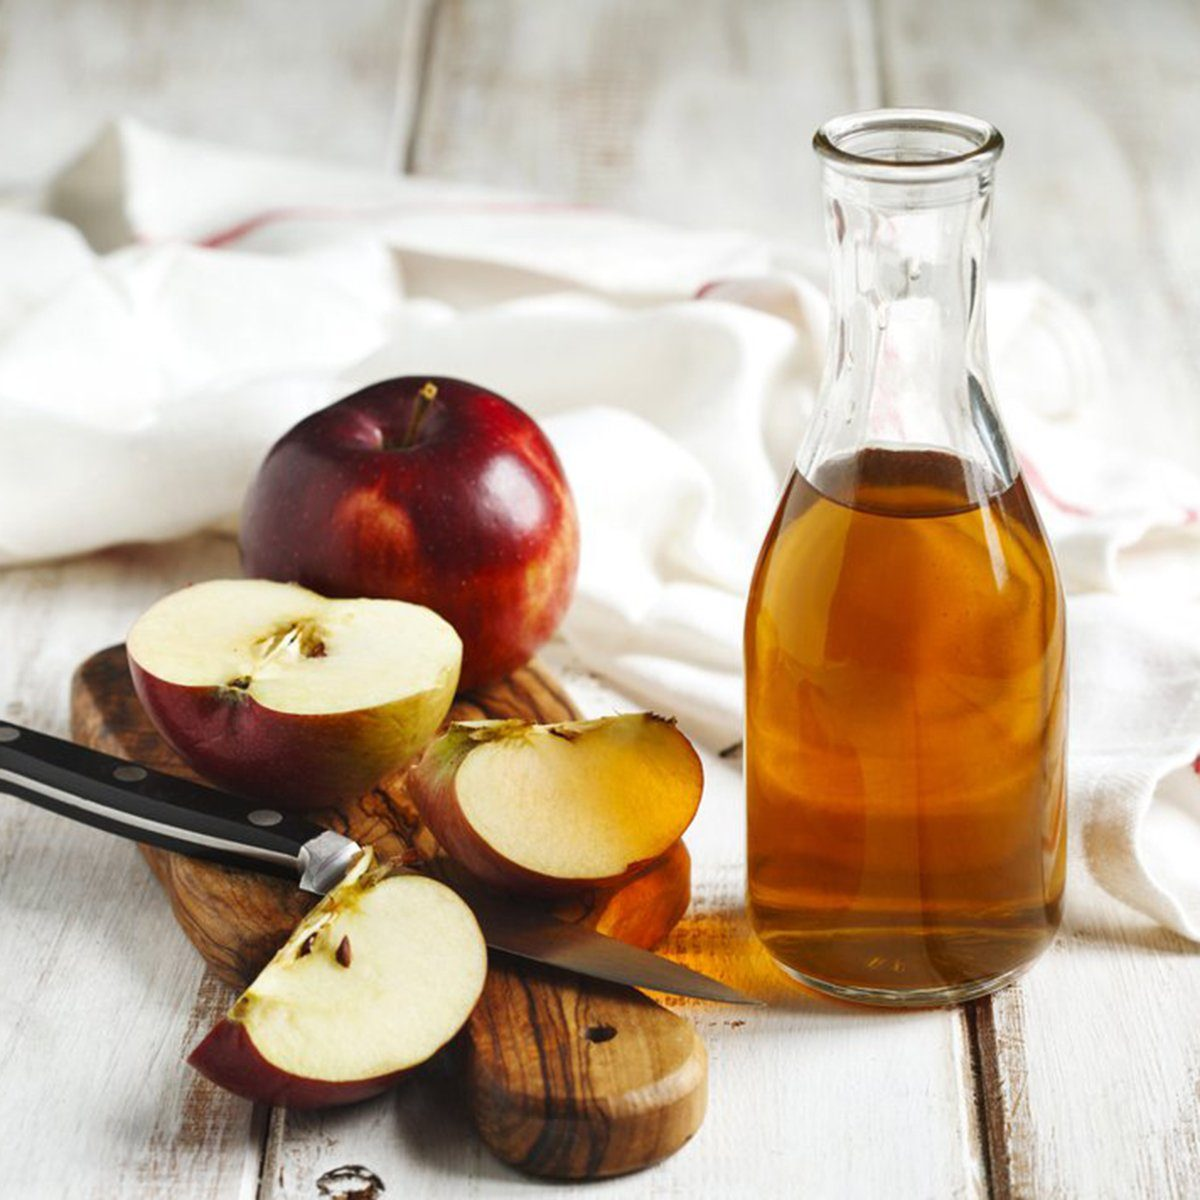 Jug of apple cider vinegar and sliced red apples